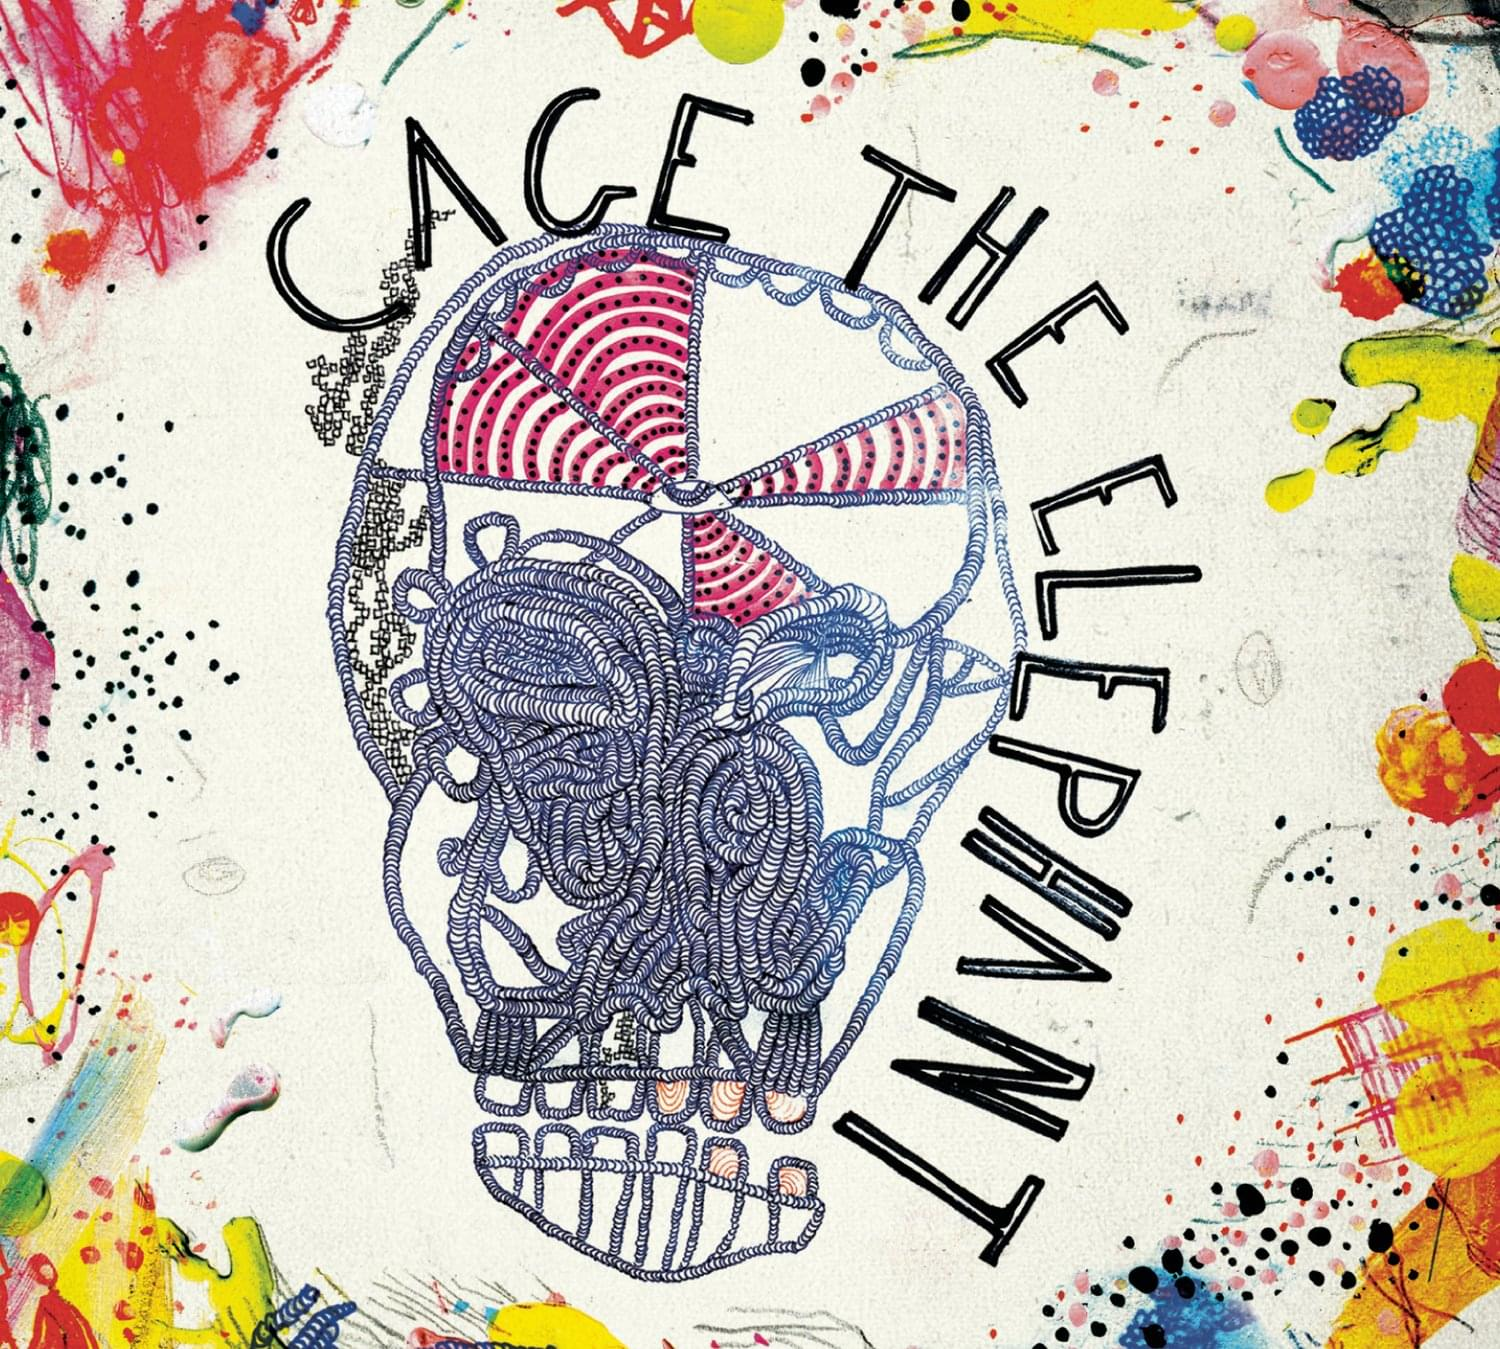 50 Years, 50 Albums 2009: Cage the Elephant